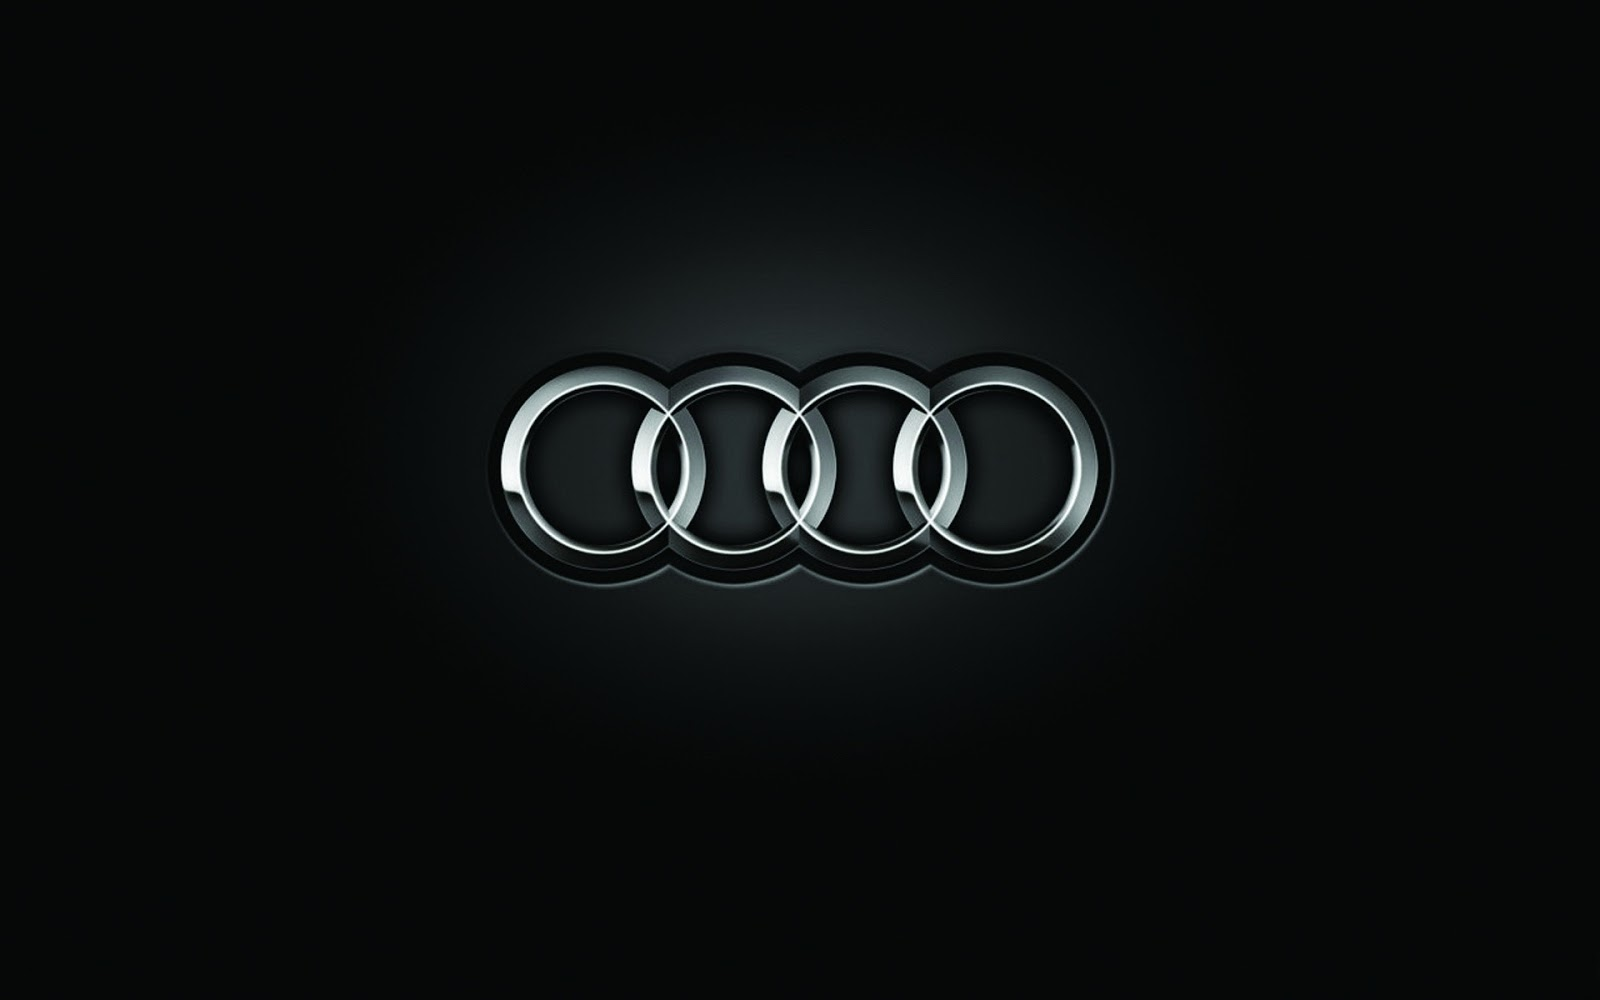 Audi Logo Audi Car Symbol Meaning And History Car Brand Namescom - Audi car emblem